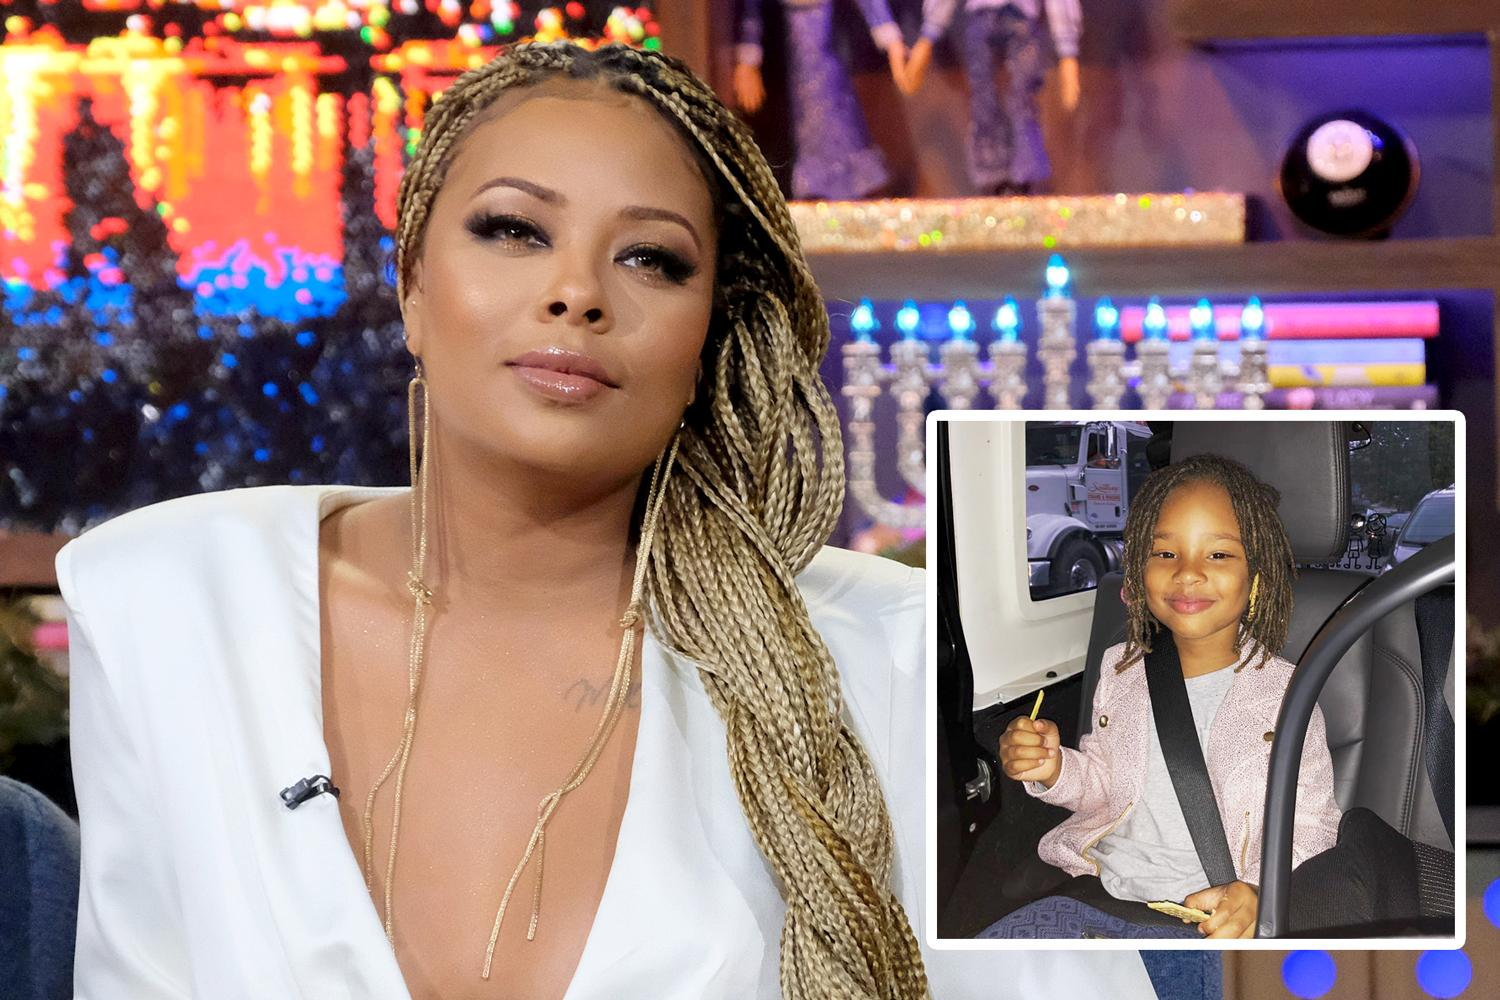 Eva Marcille's Video Of Her Baby Girl, Marley Makes Fans Smile - Watch It Here